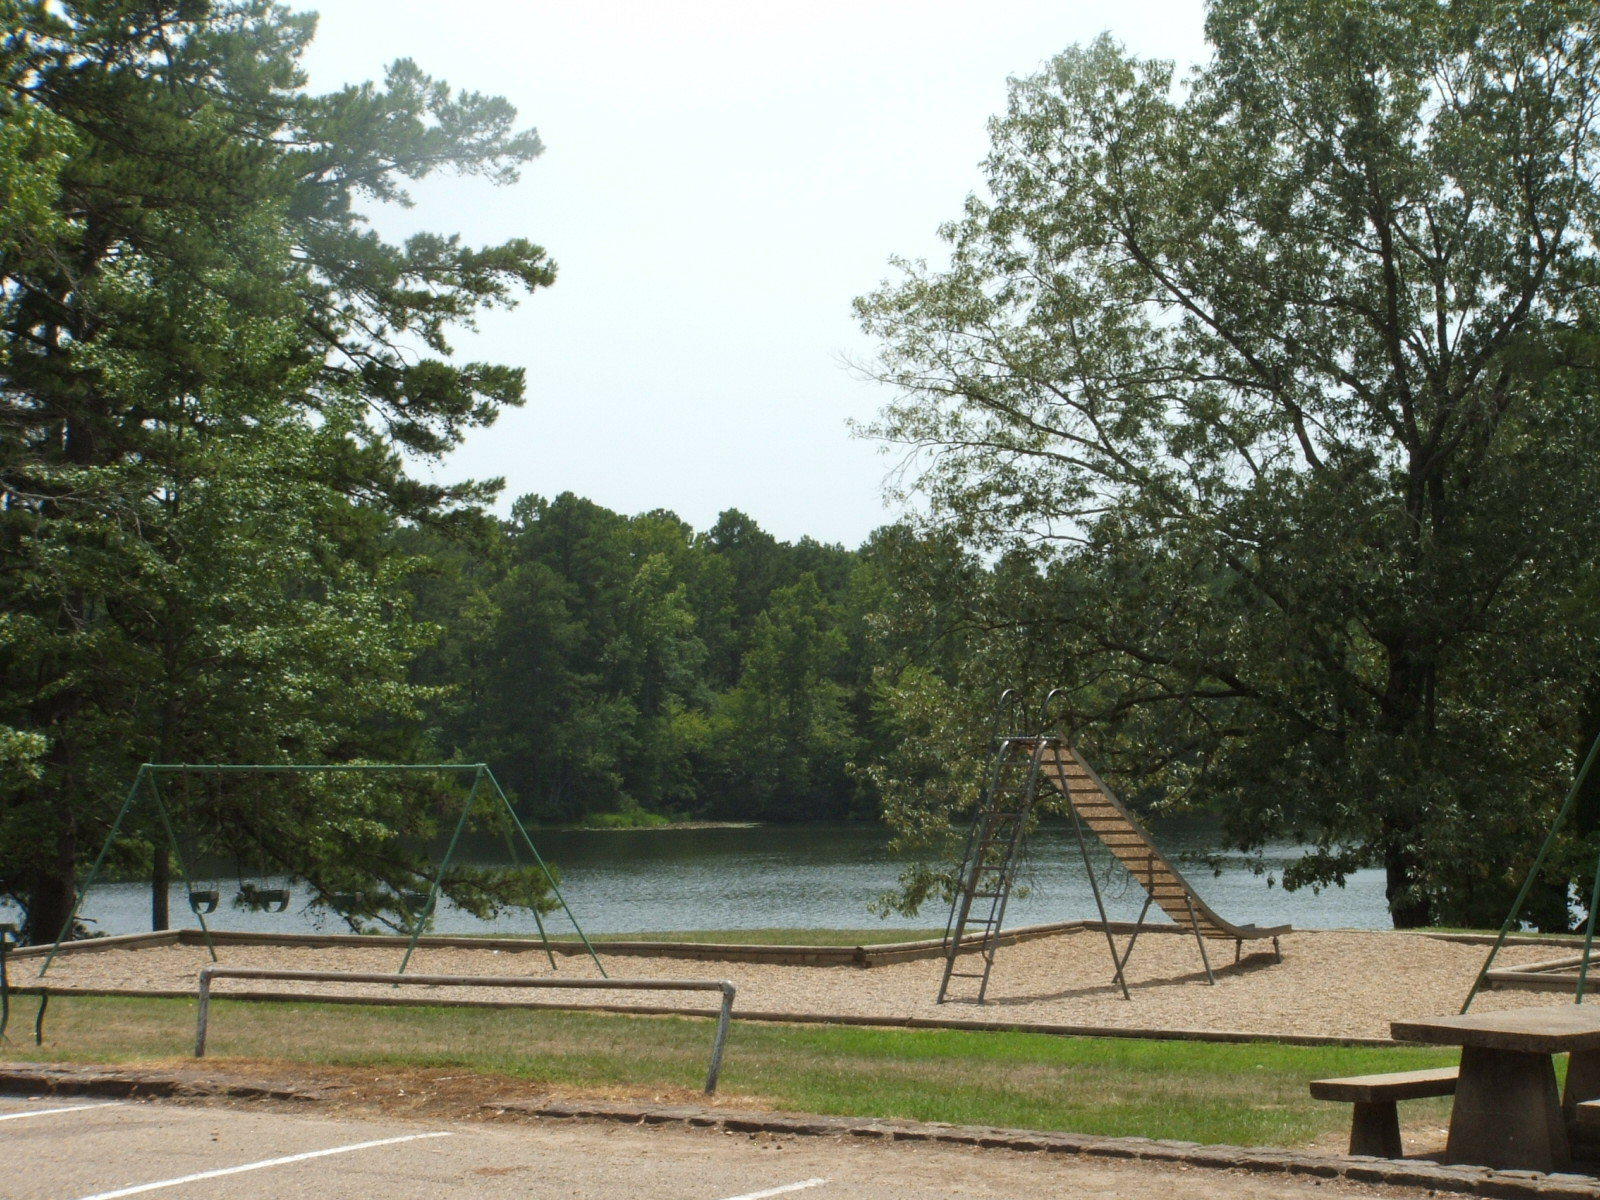 statepark swings.jpg